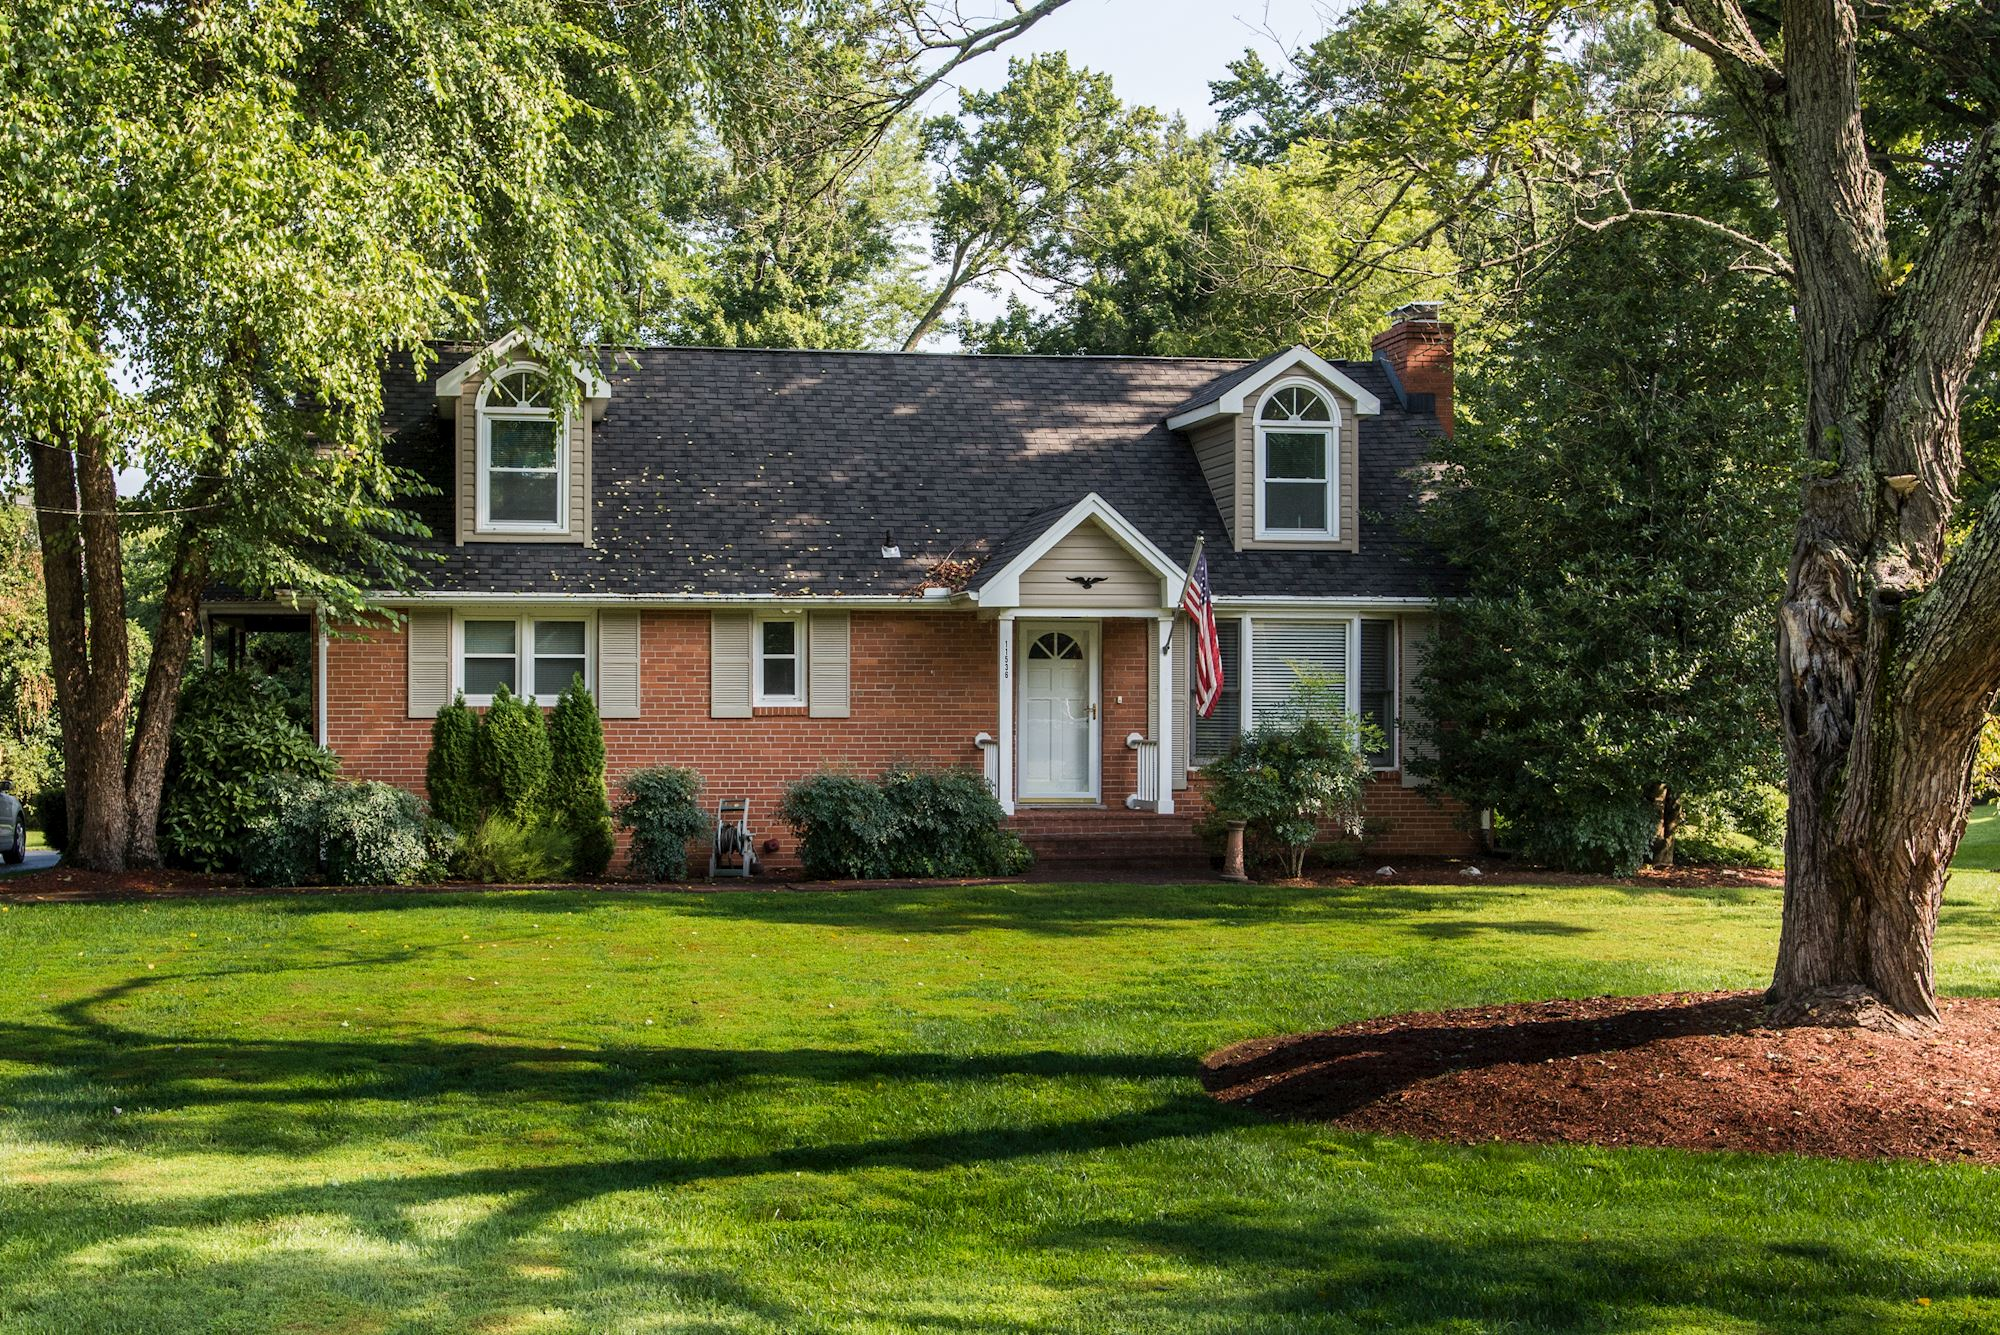 SOLD: Single Family 3 BD Home in Heart of Fairfax, VA